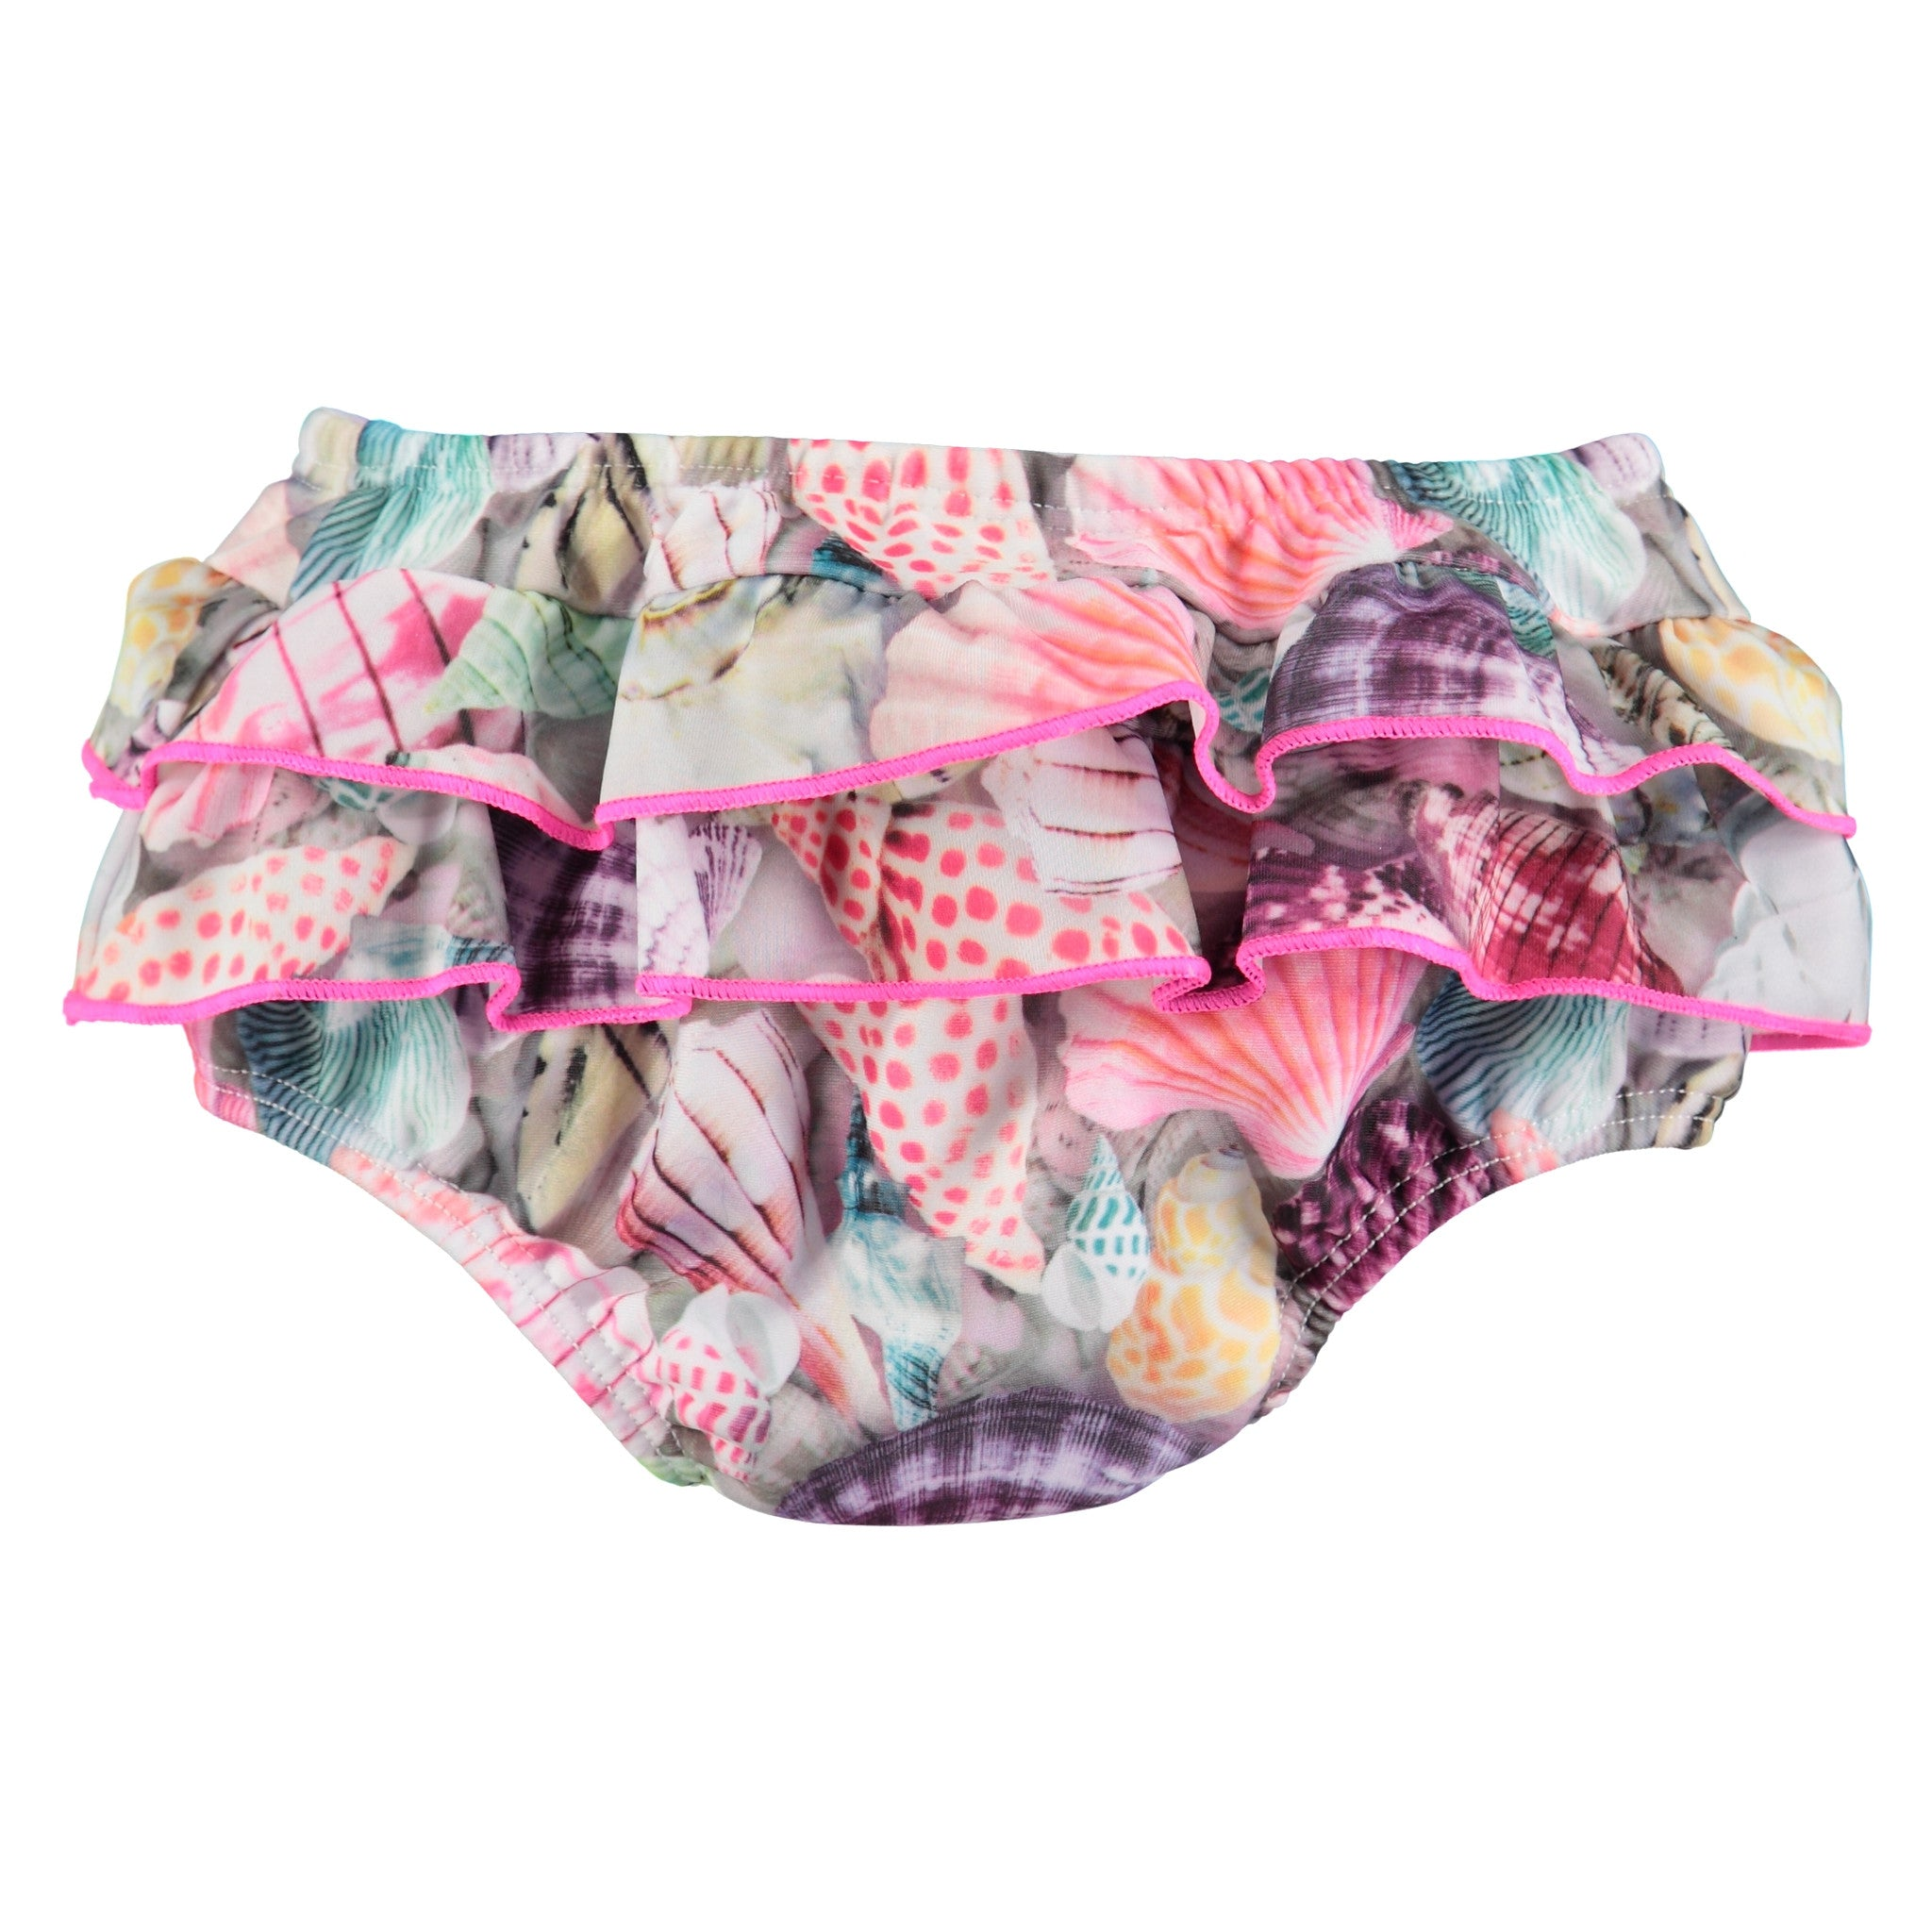 Molo Seashell Swim Diaper Cove